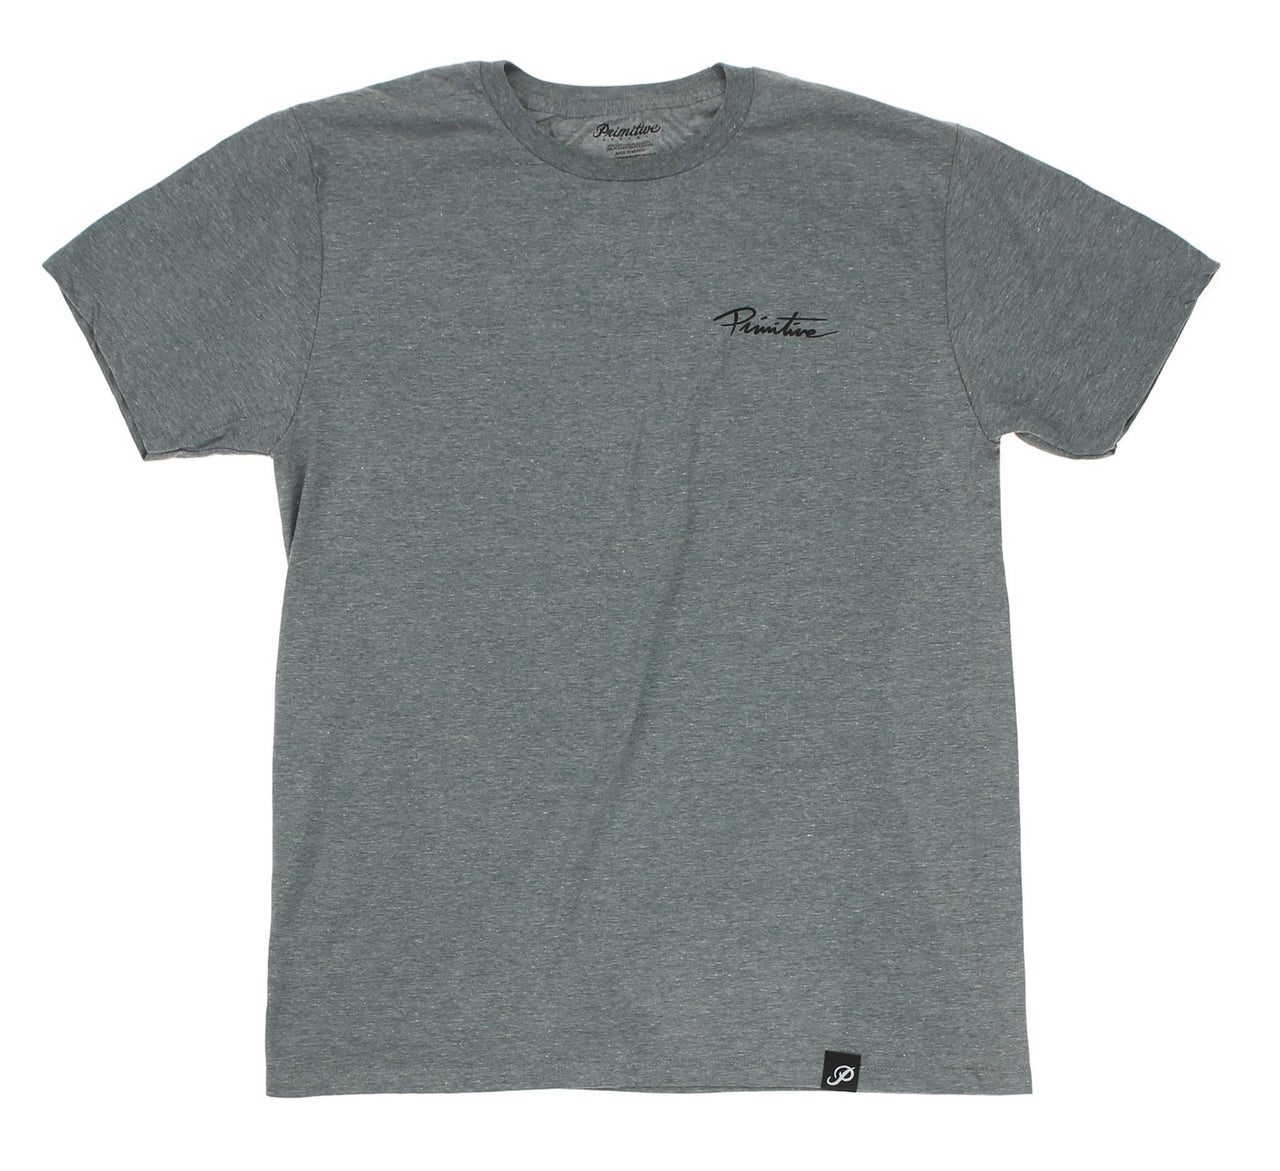 NUEVO SCRIPT LIGHTWEIGHT TEE, ATHLETIC HEATHER